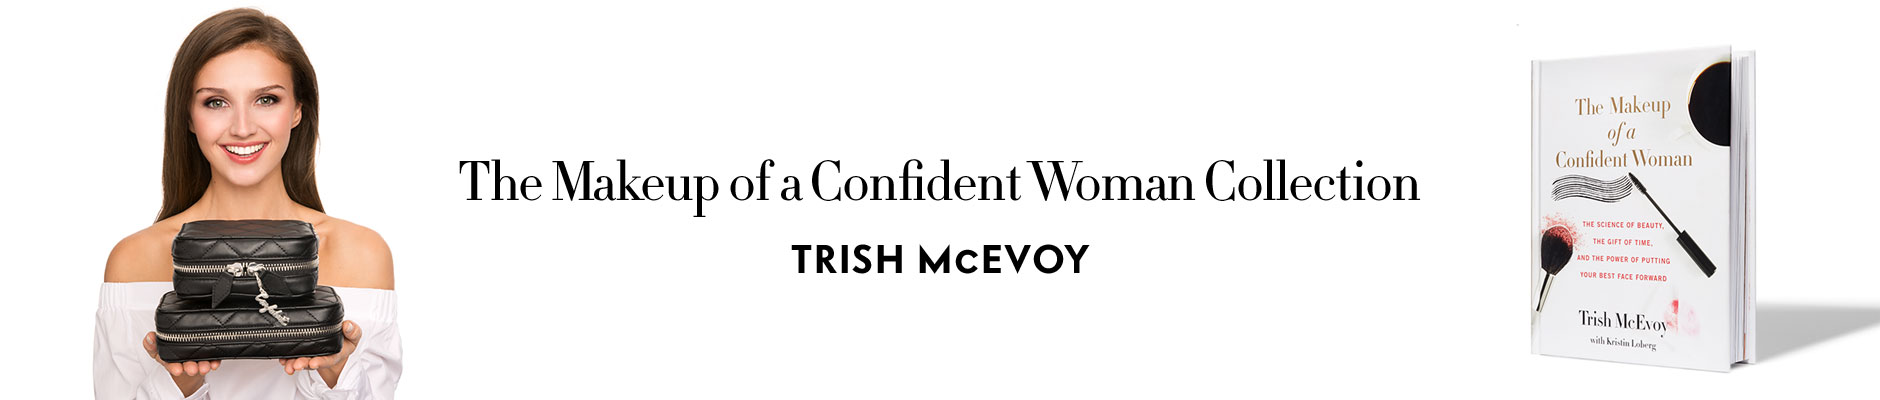 the makeup of a confident woman collection - Trish McEvoy